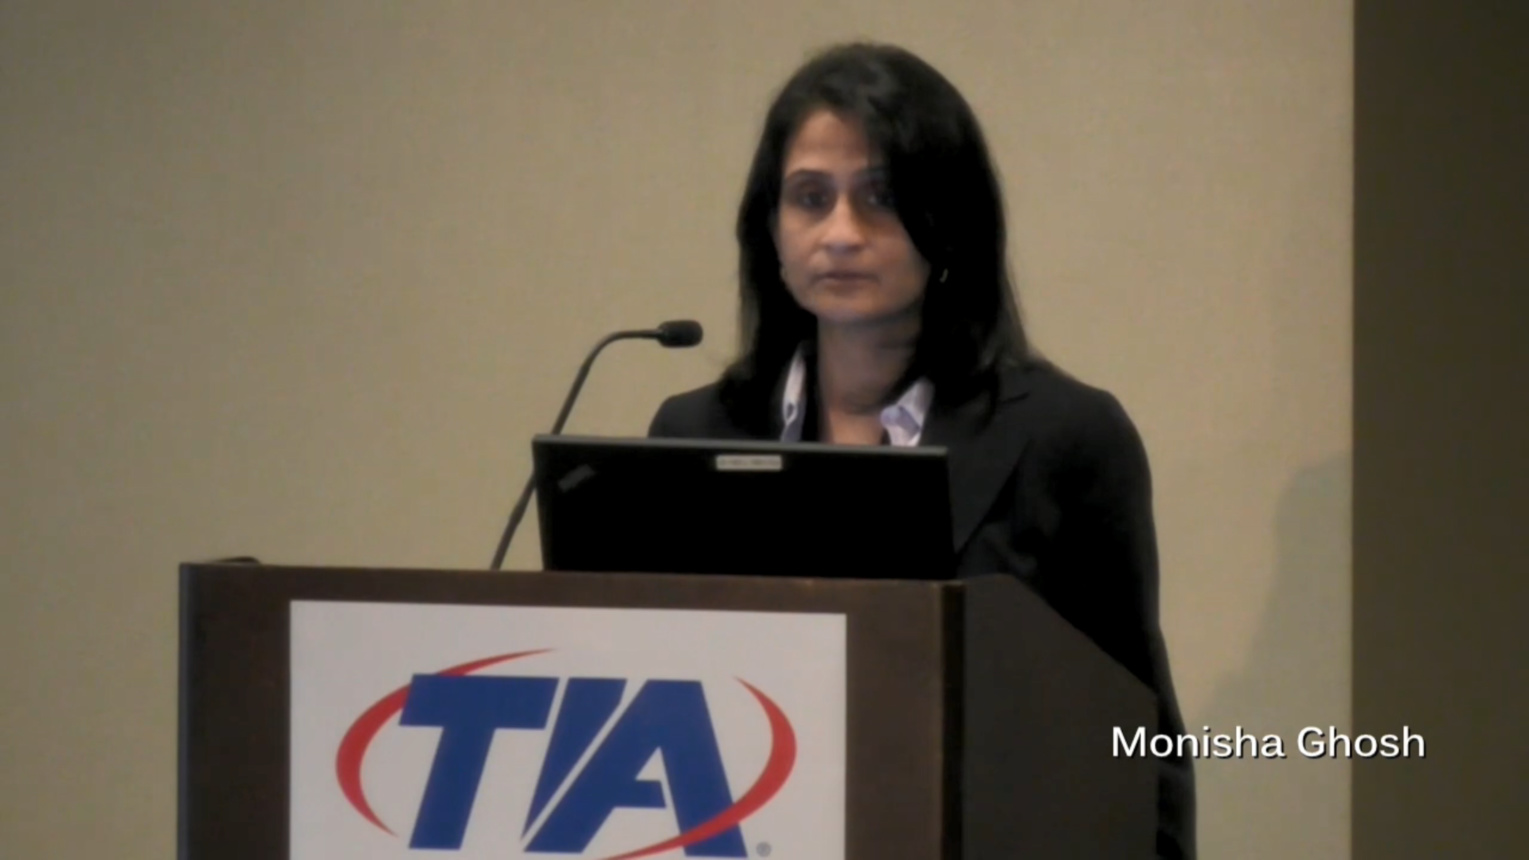 Thoreau: An Experimental, Low-Power Wireless Underground Sensor Network for Soil Sensing and Agriculture - Prof. Monisha Ghosh, University of Chicago